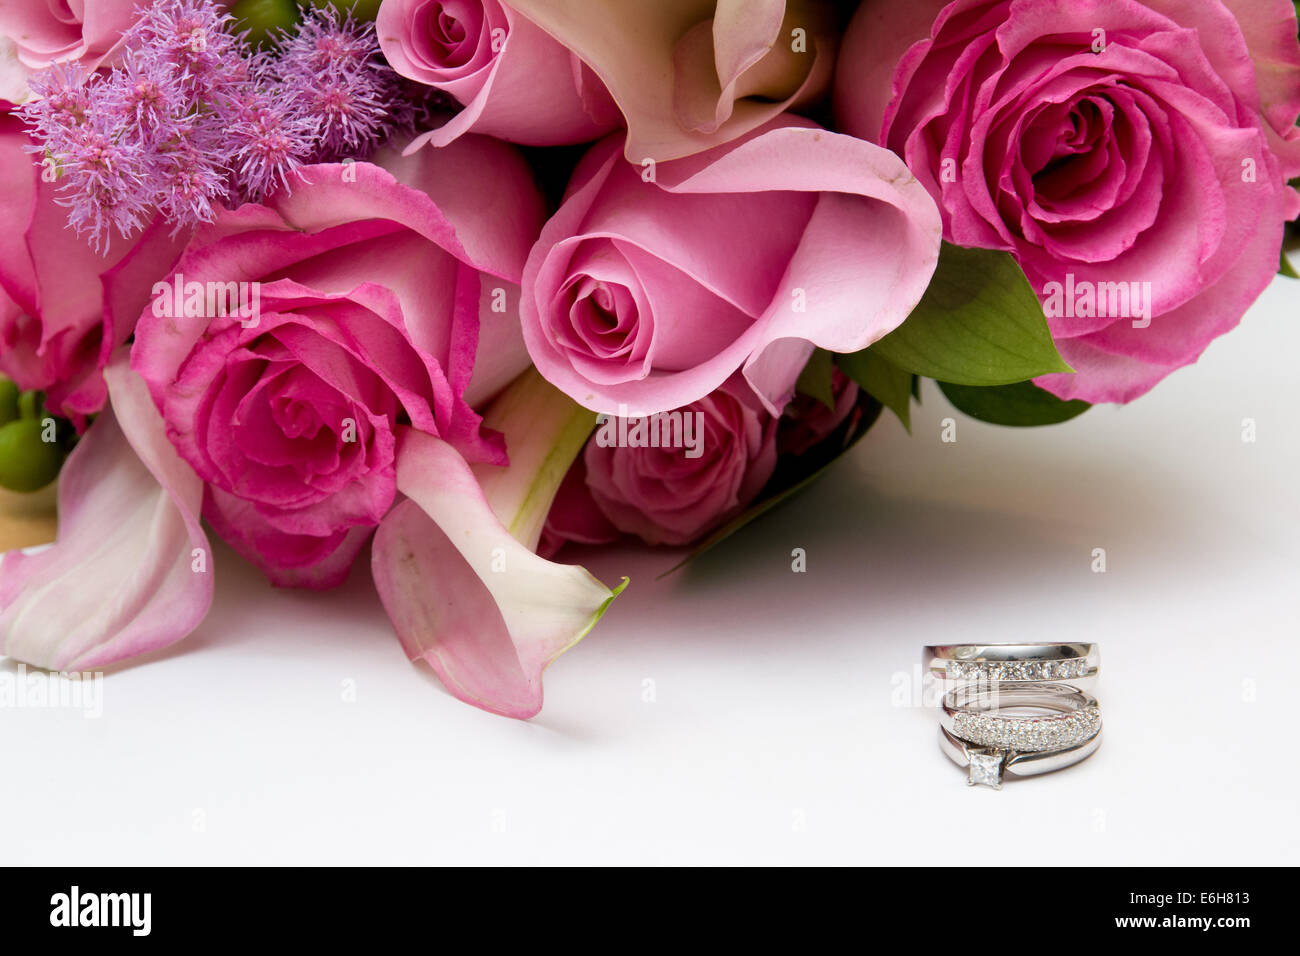 Ring A Ring Of Roses Stock Photos & Ring A Ring Of Roses Stock ...